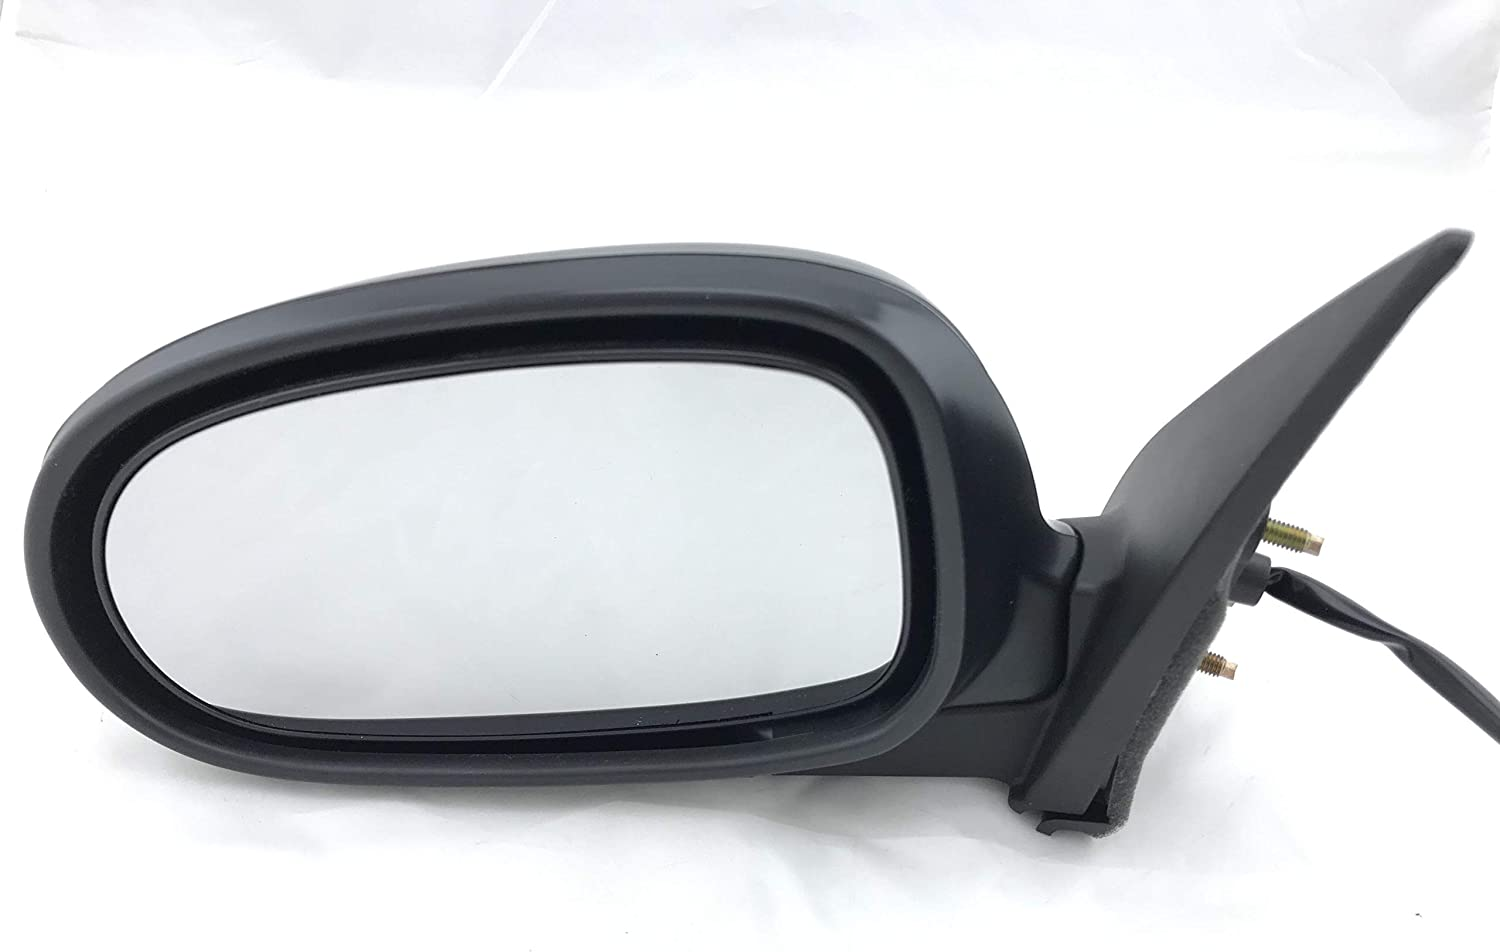 Passenger Side Left Rear View Mirror Replacement for NISSAN 00-03 MAXIMA Parts Link # OE:963023Y001 NI1320121